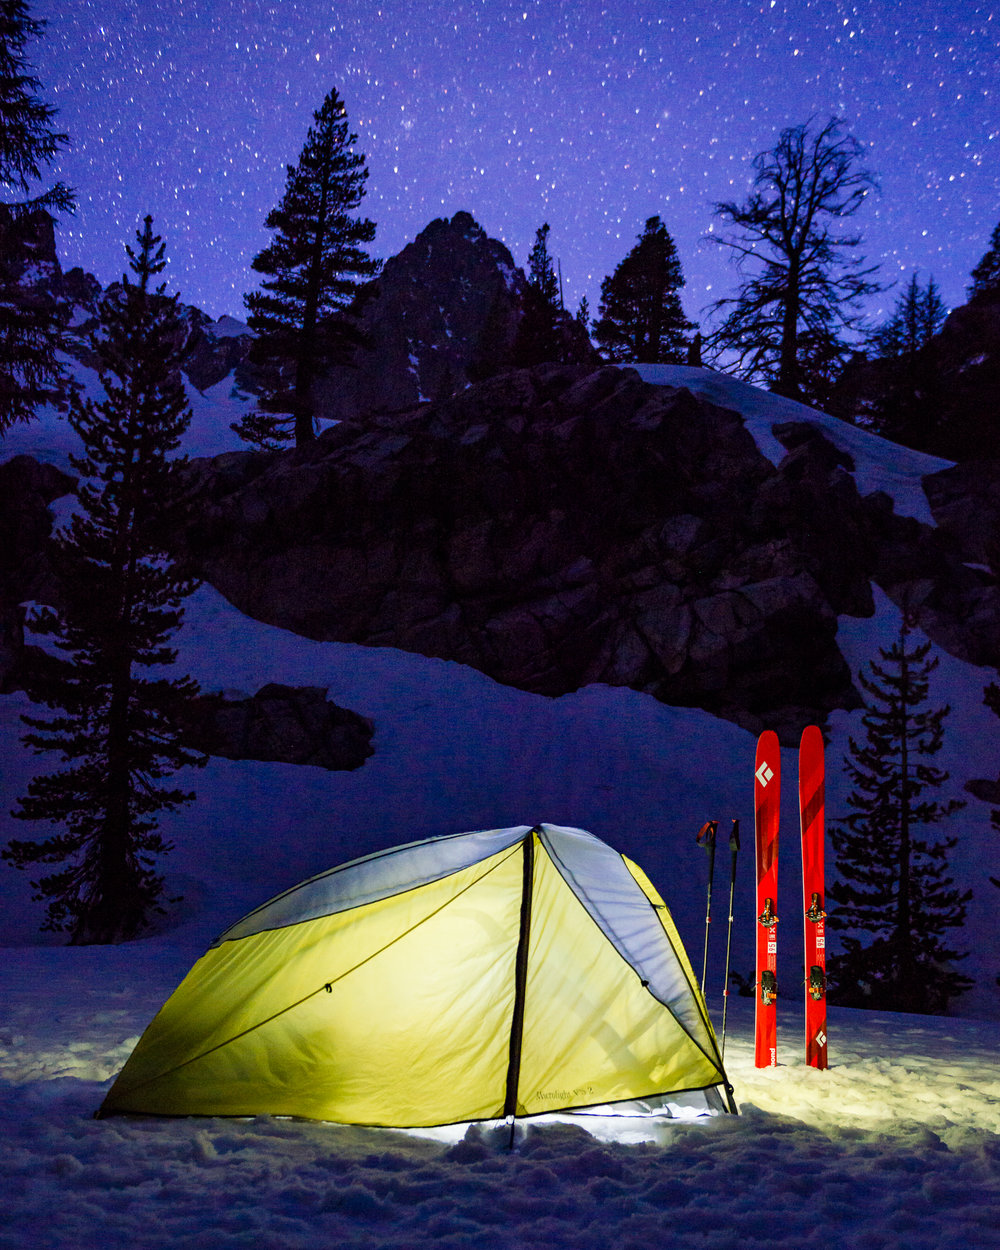 Miles Weaver_Mount Ritter_Sierra_skiing_camping_backpacking_stars.jpg